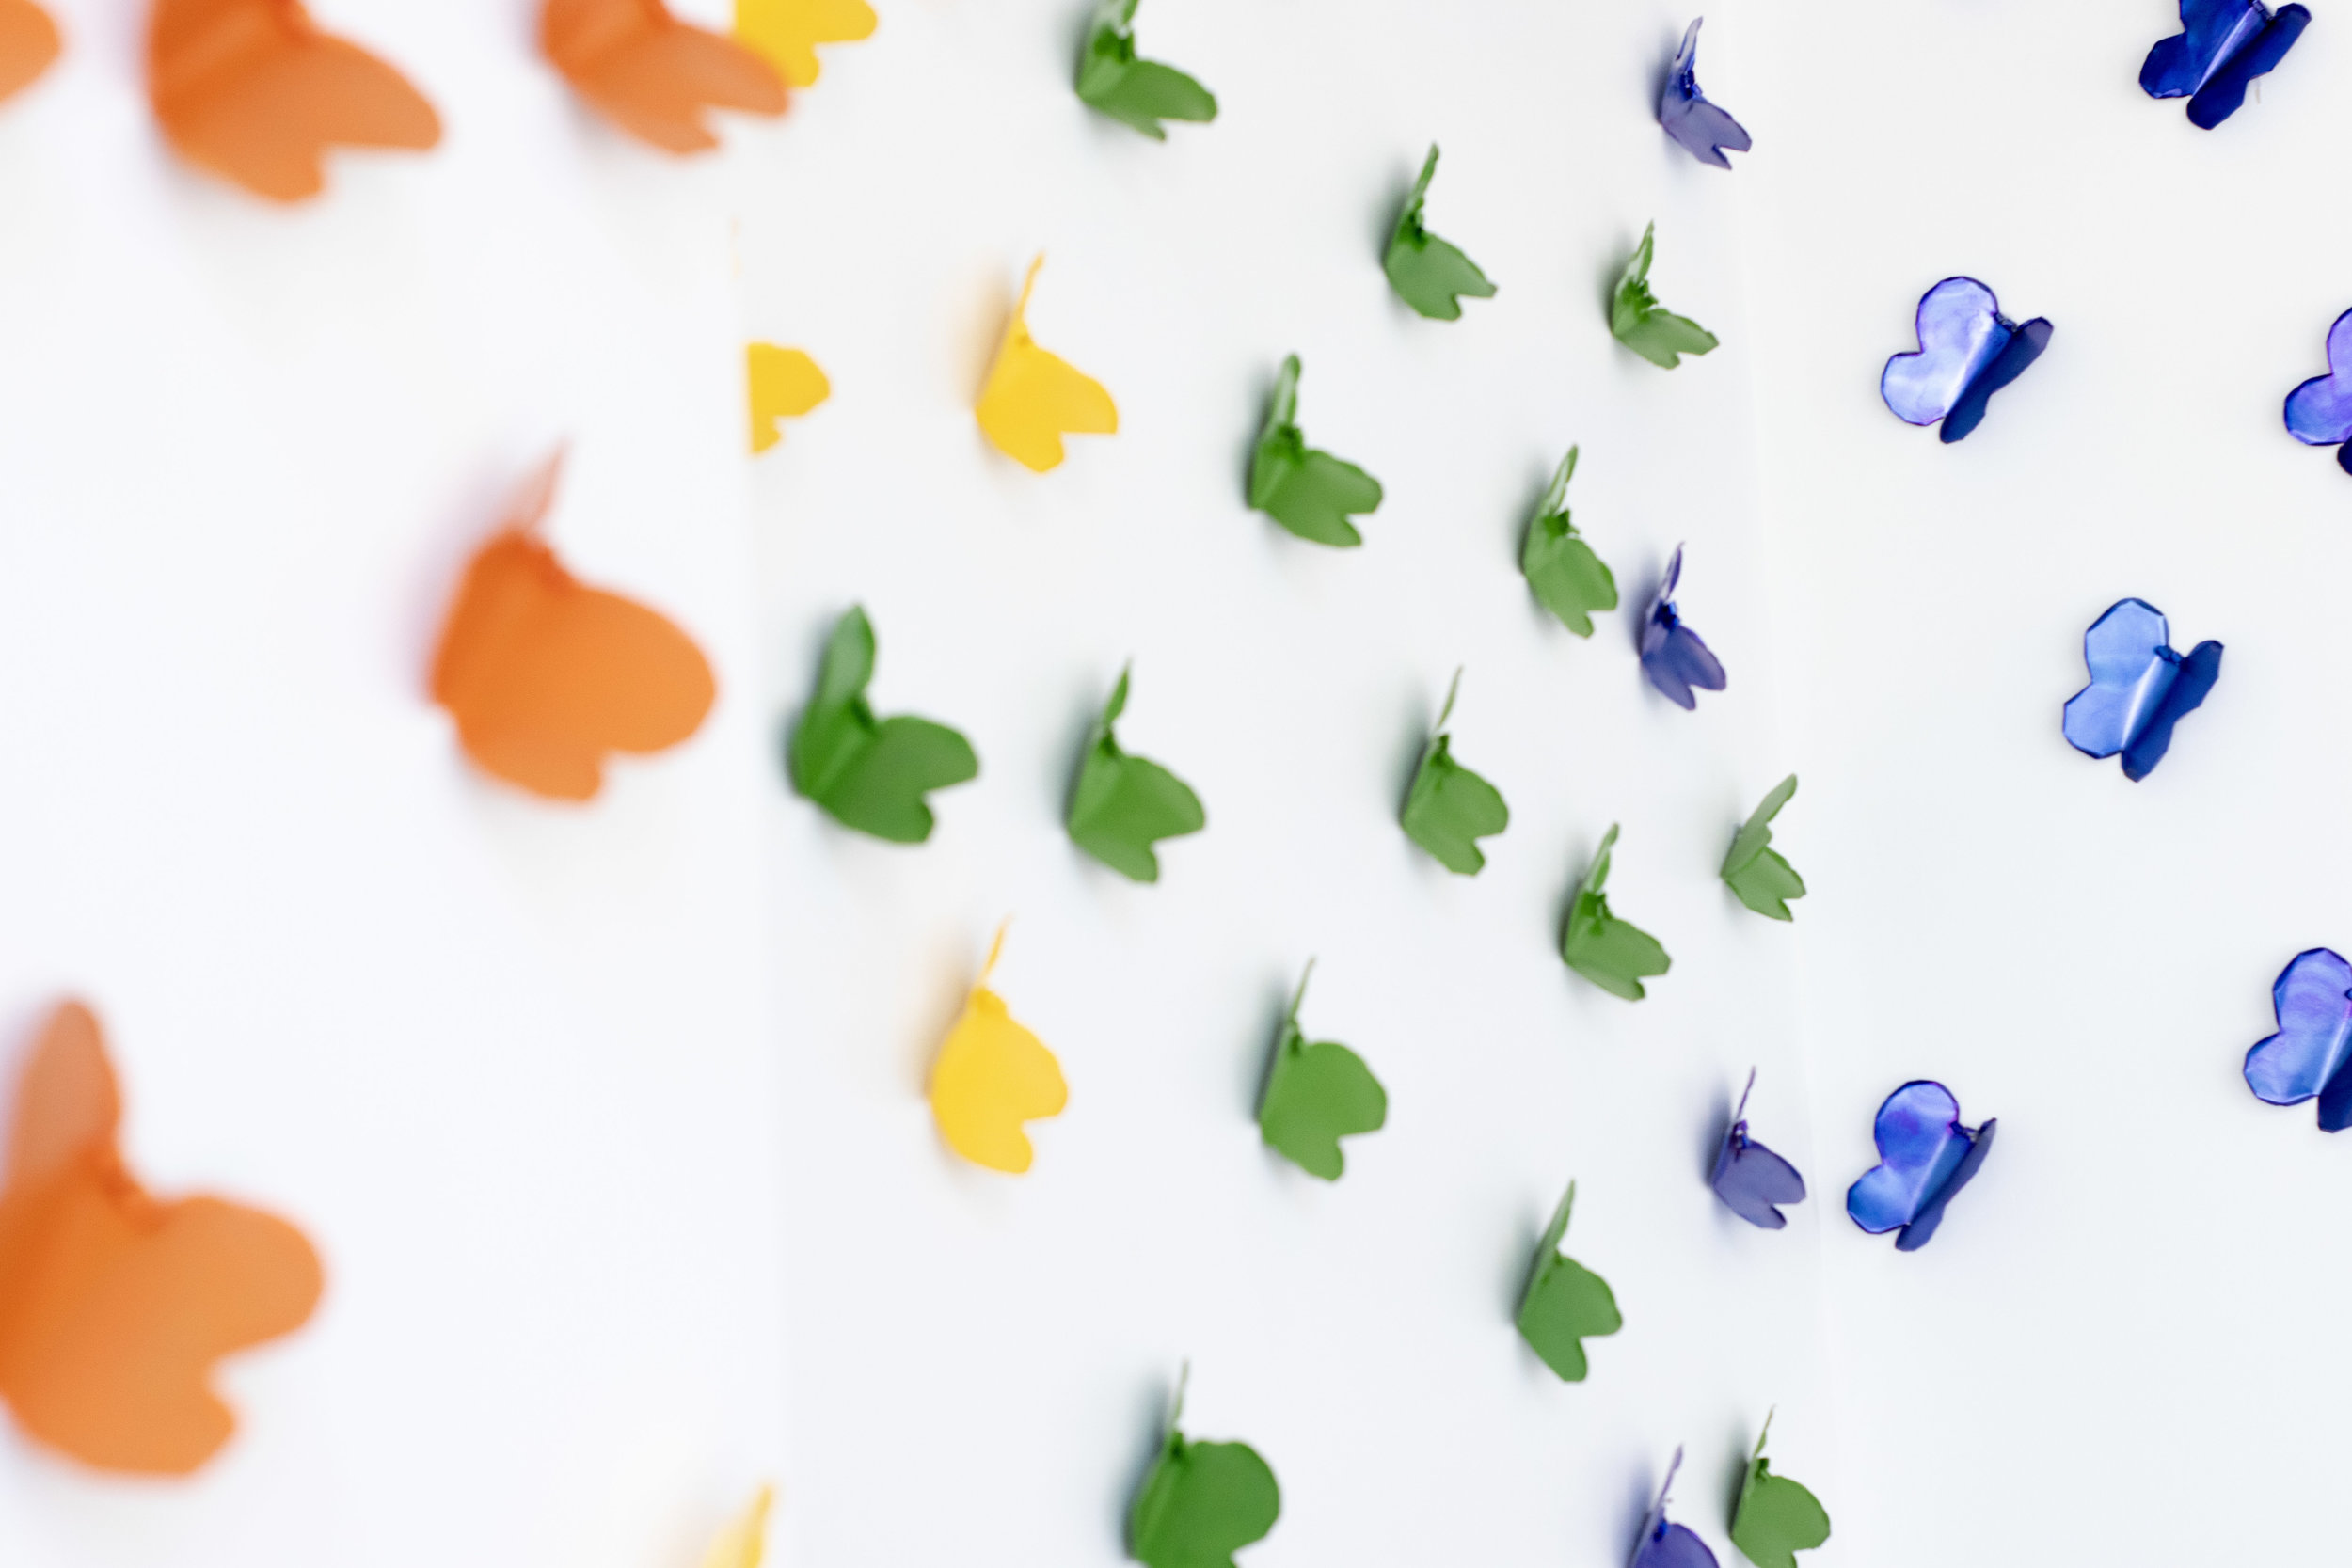 Pride Butterfly Wall handmade by Dr. Gilleon